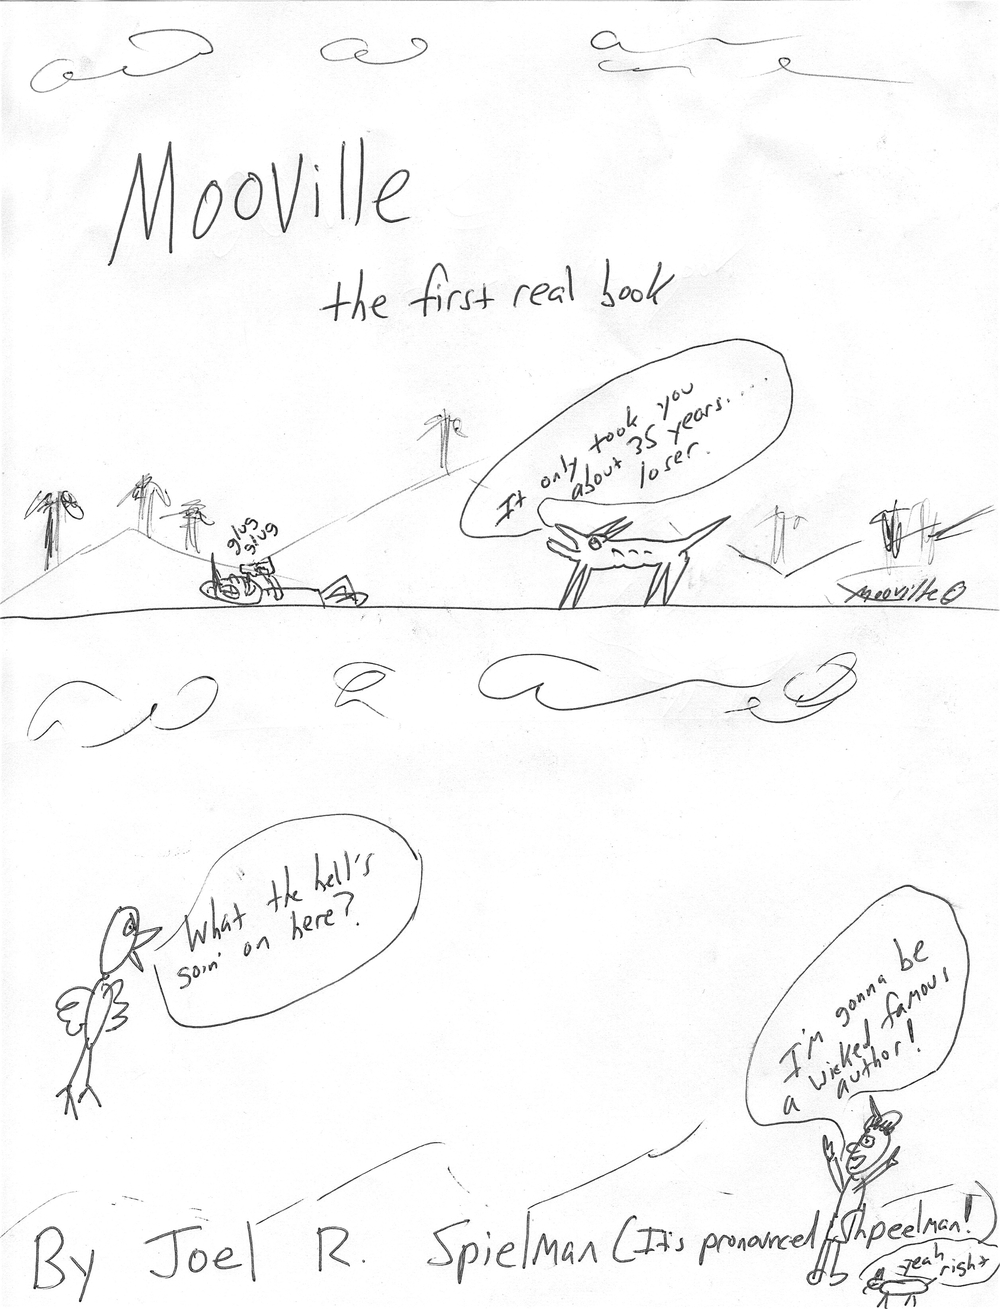 Mooville - The First Real Book  This is a collection of absurdist comic strips that take place in Mooville, a strange town filled with degenerate animals and war veterans, imagined by Lonely Giant Joel Spielman.